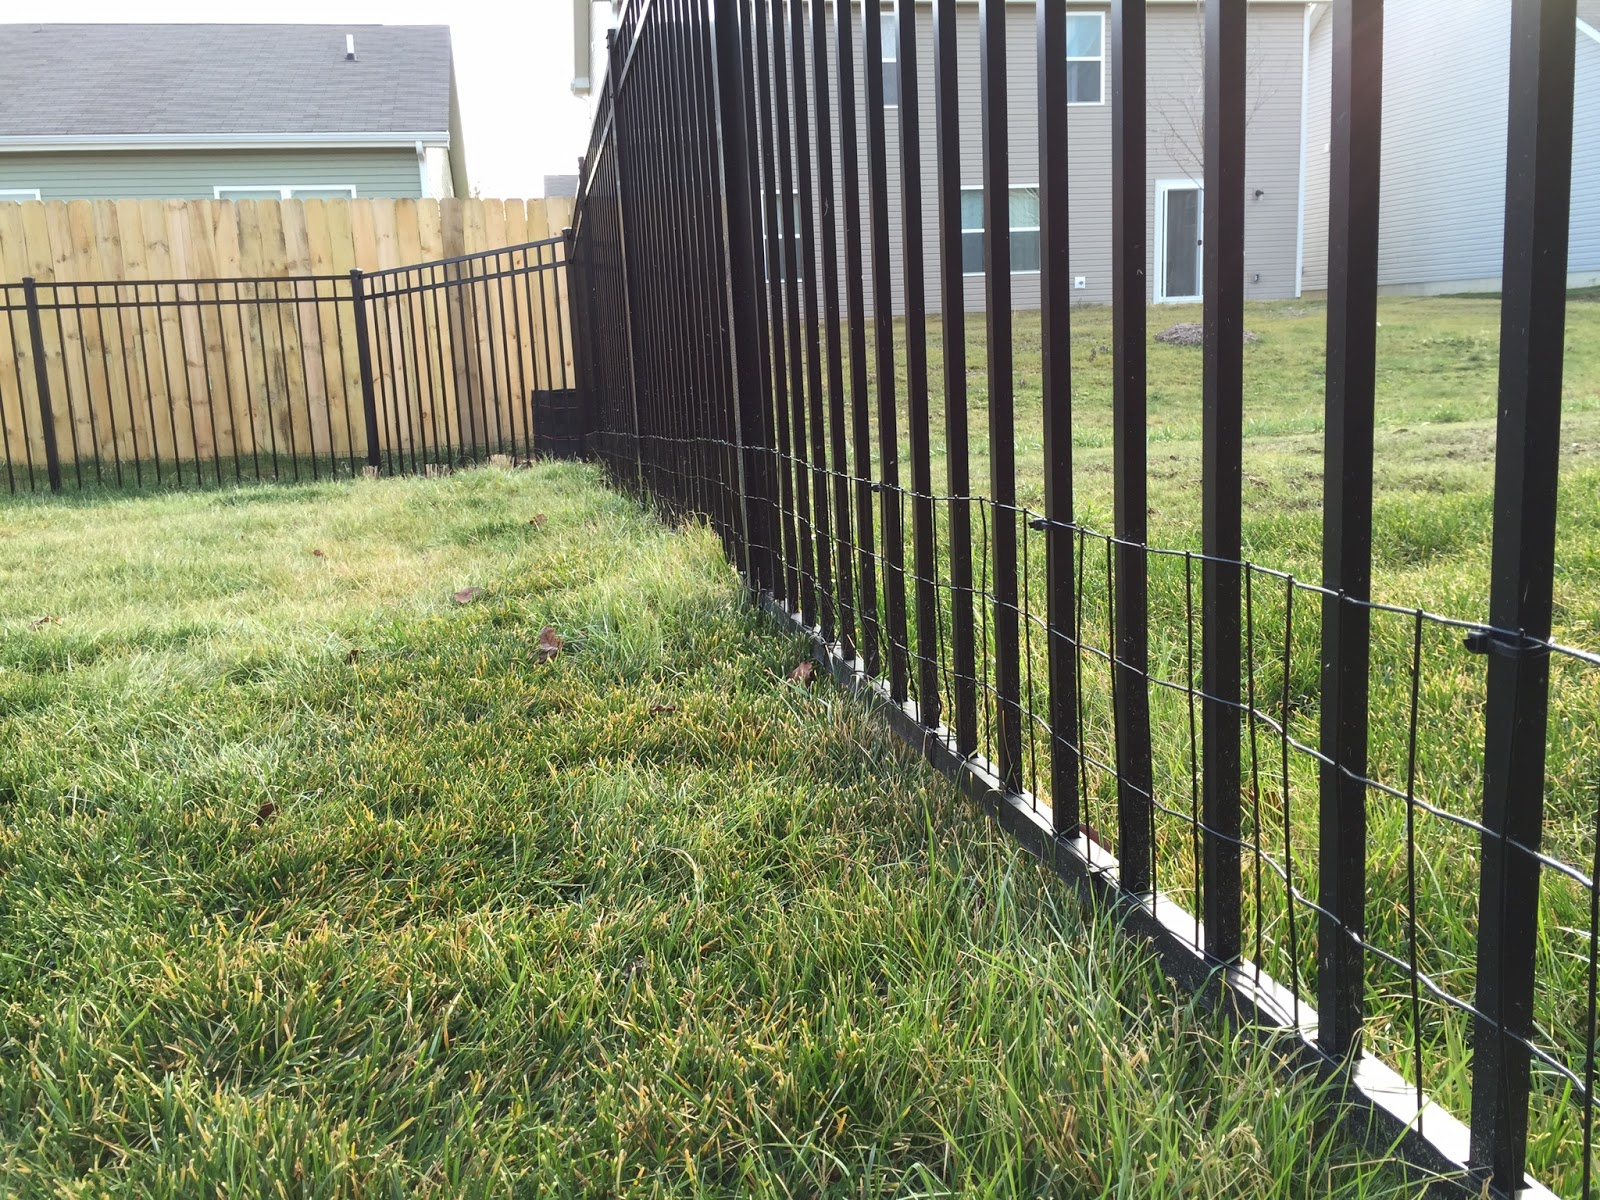 Diy Keep Small Dog In Yard With Welded Wire Aluminum Fence Addition with Backyard Fences For Dogs